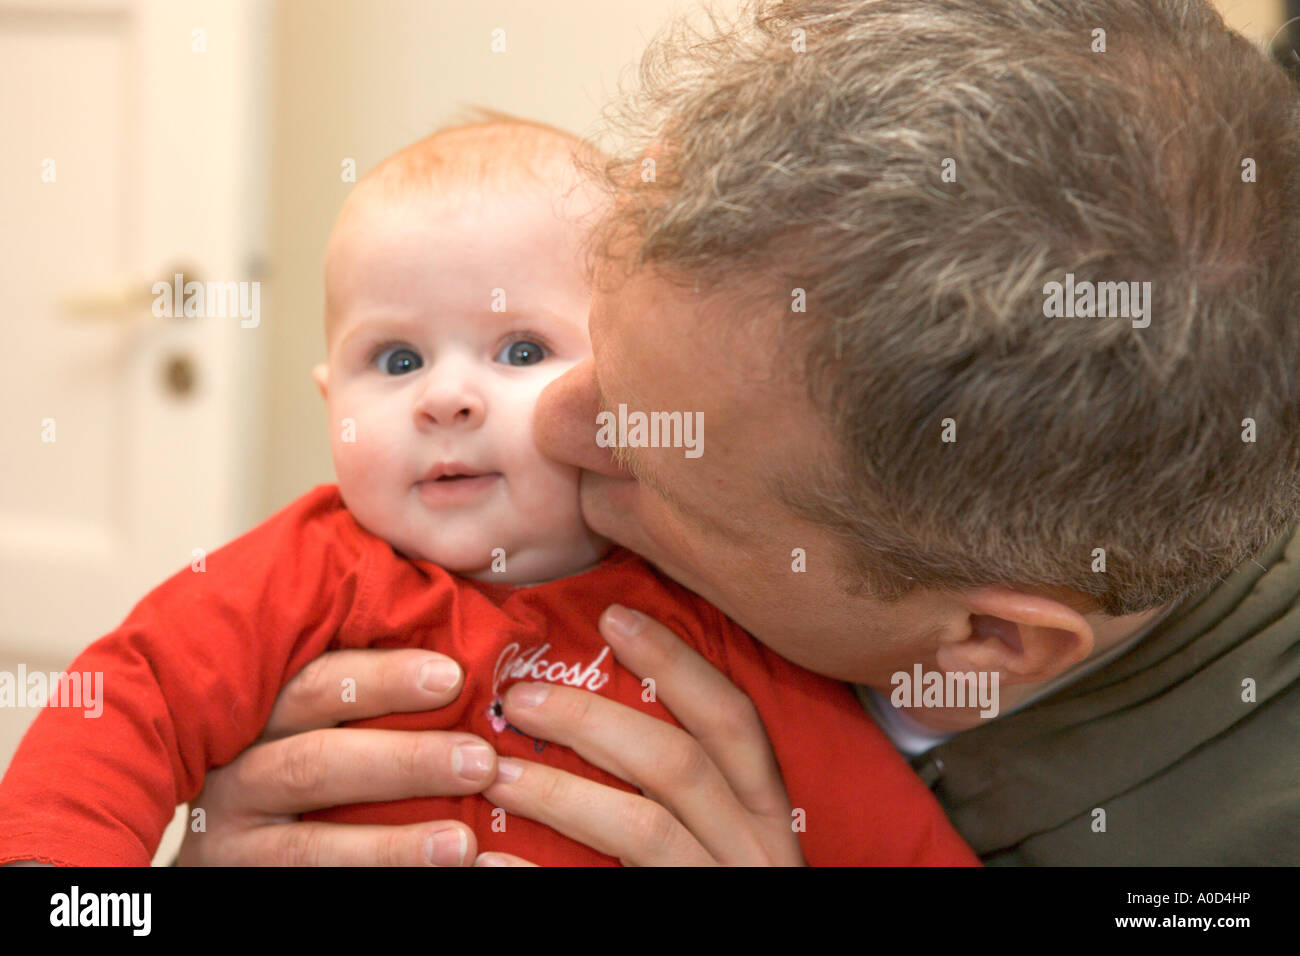 FATHER PLAYING WITH HIS BABY - Stock Image